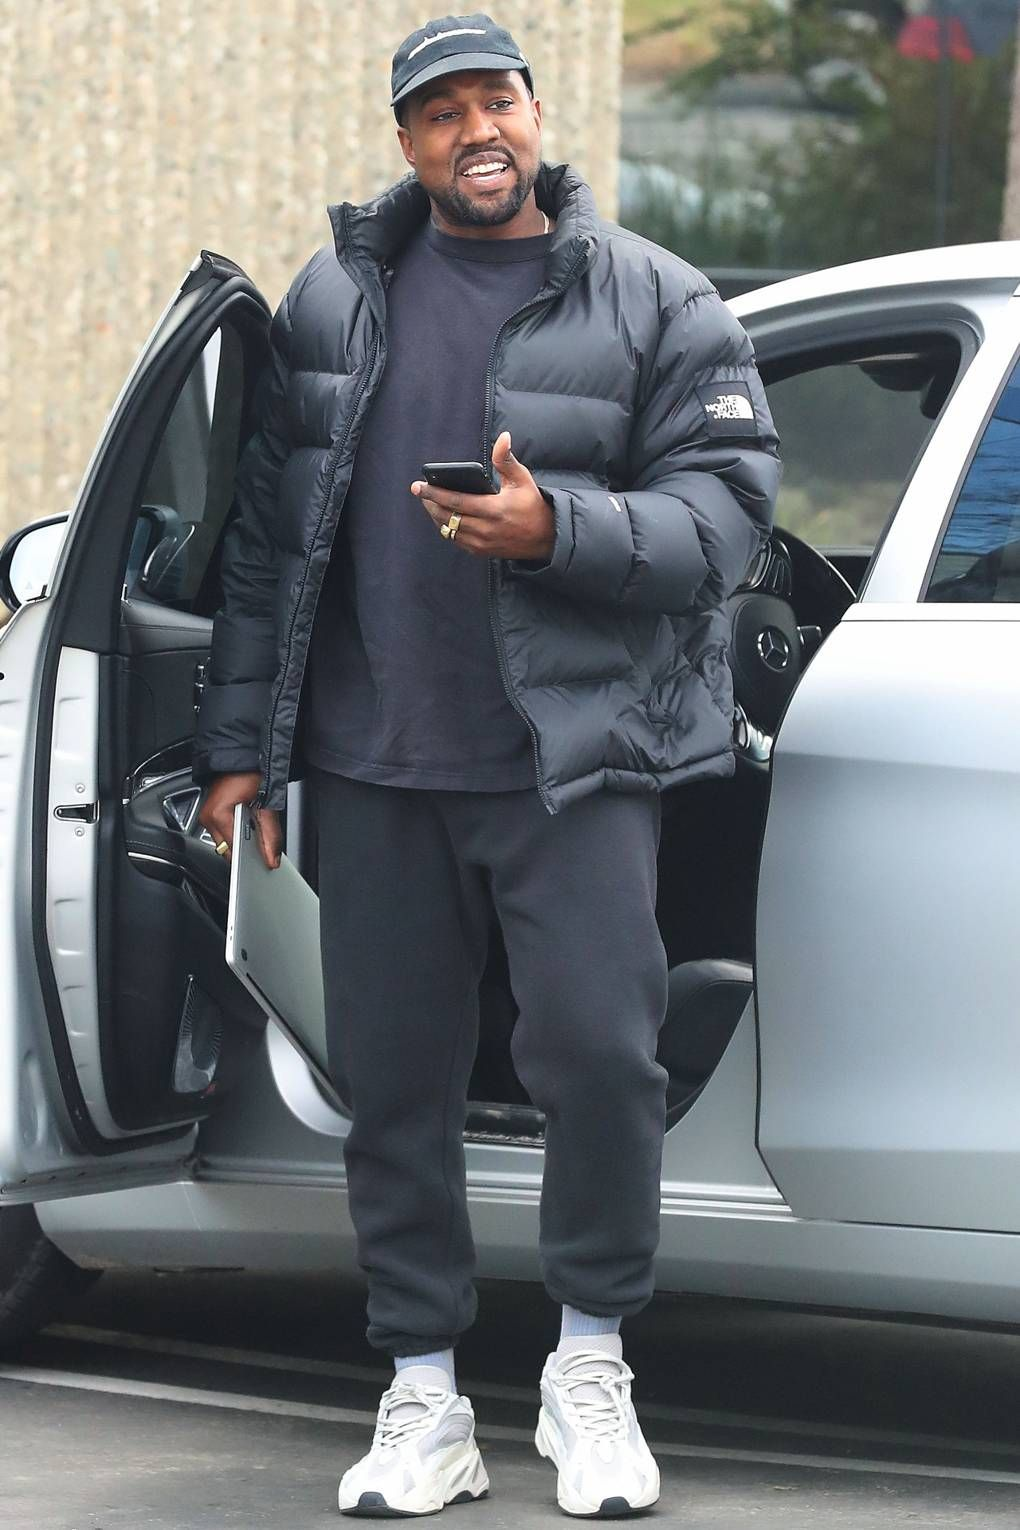 Kanye West Stepping out of a car and smiling. Wearing The North Face Jacket